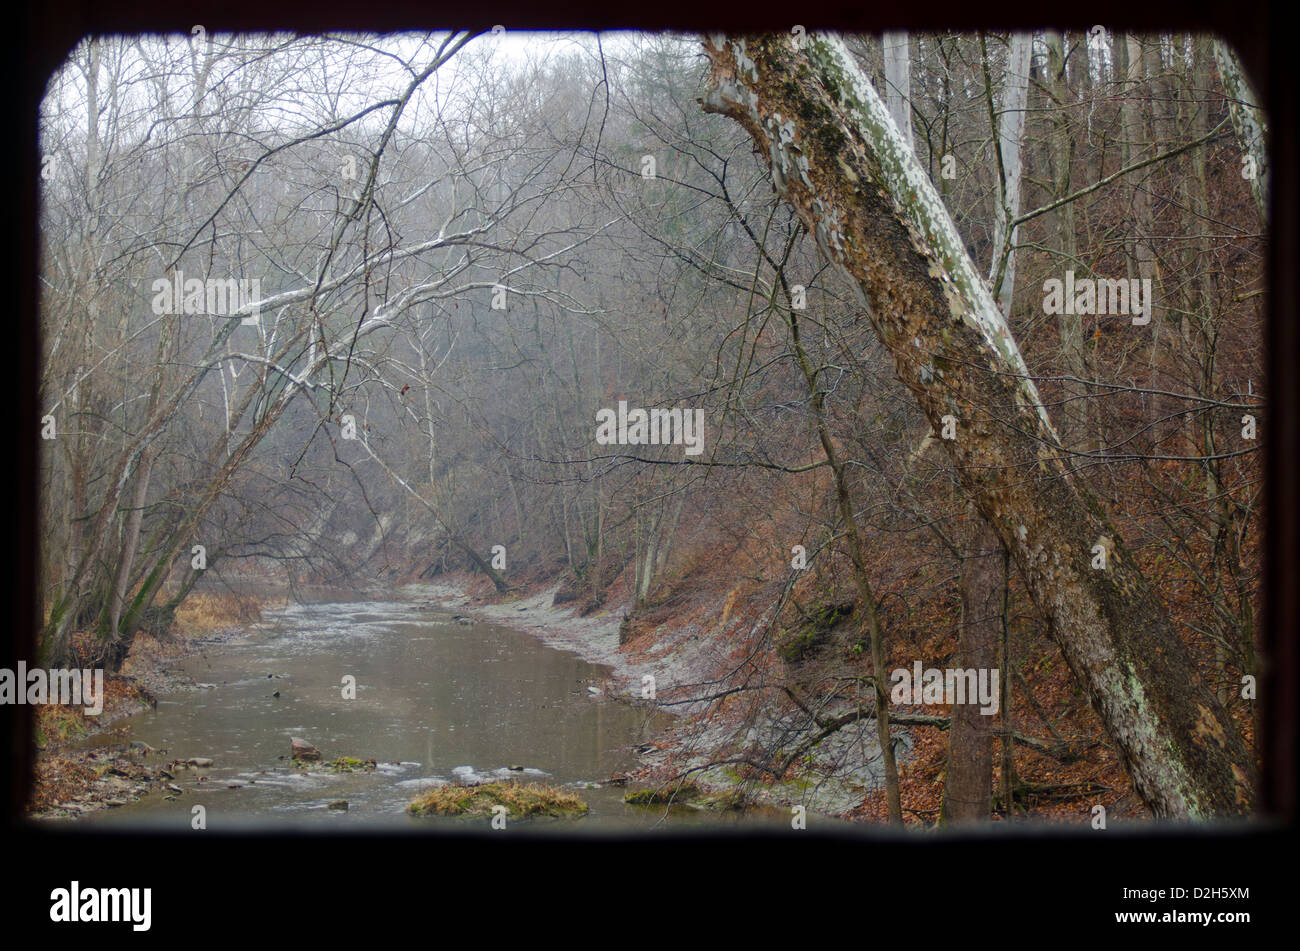 Looking out the window of the Rolling Stone Covered Bridge, just outside of Bainbridge, Indiana, at a winter scene. - Stock Image